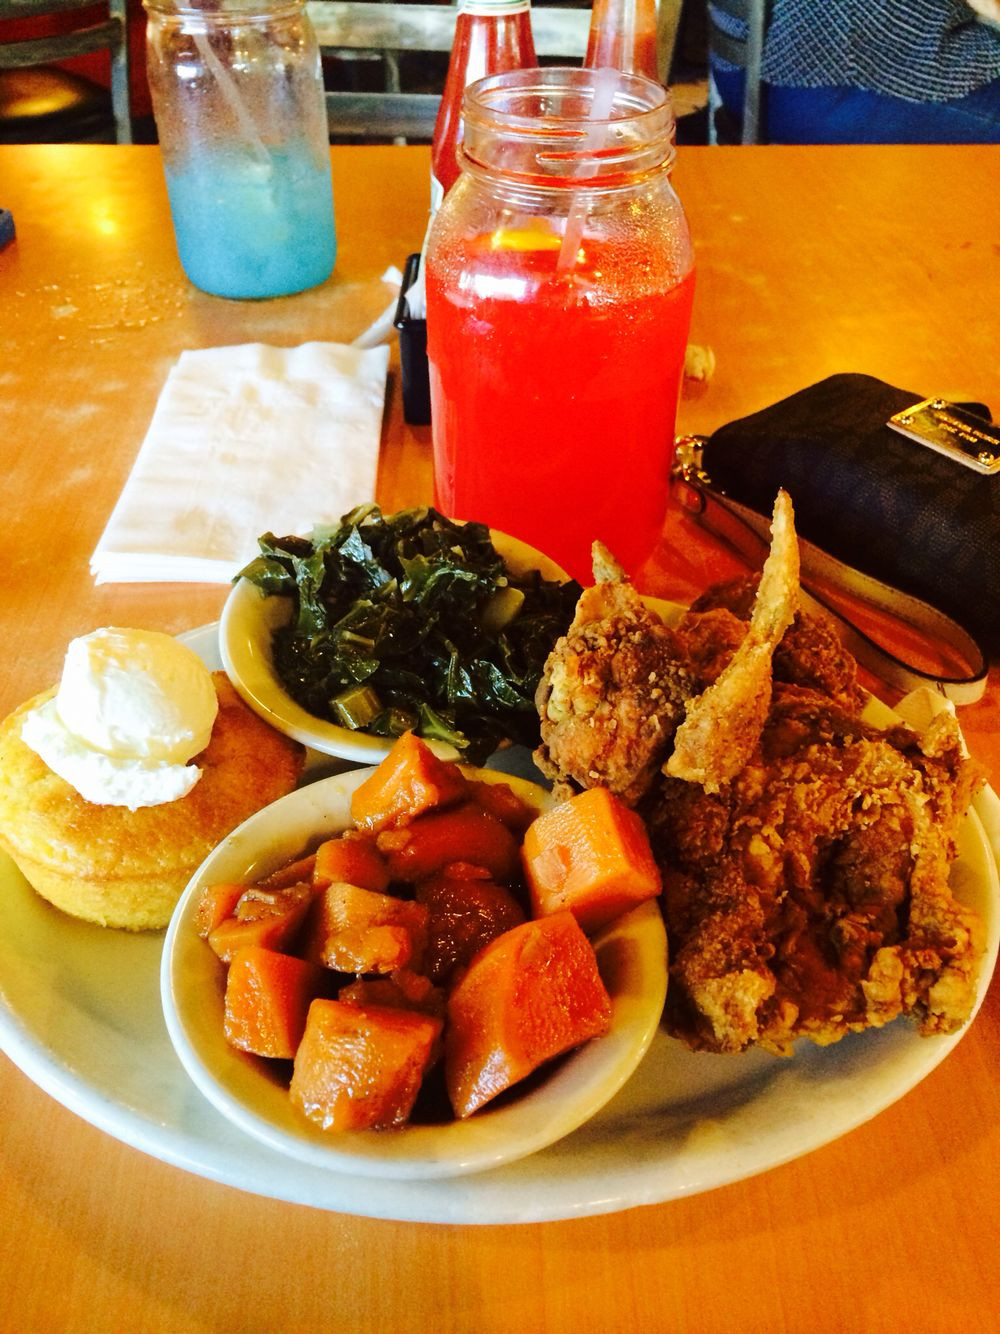 Lolo Chicken And Waffles  LoLo s Chicken and Waffles Phoenix AZ With images